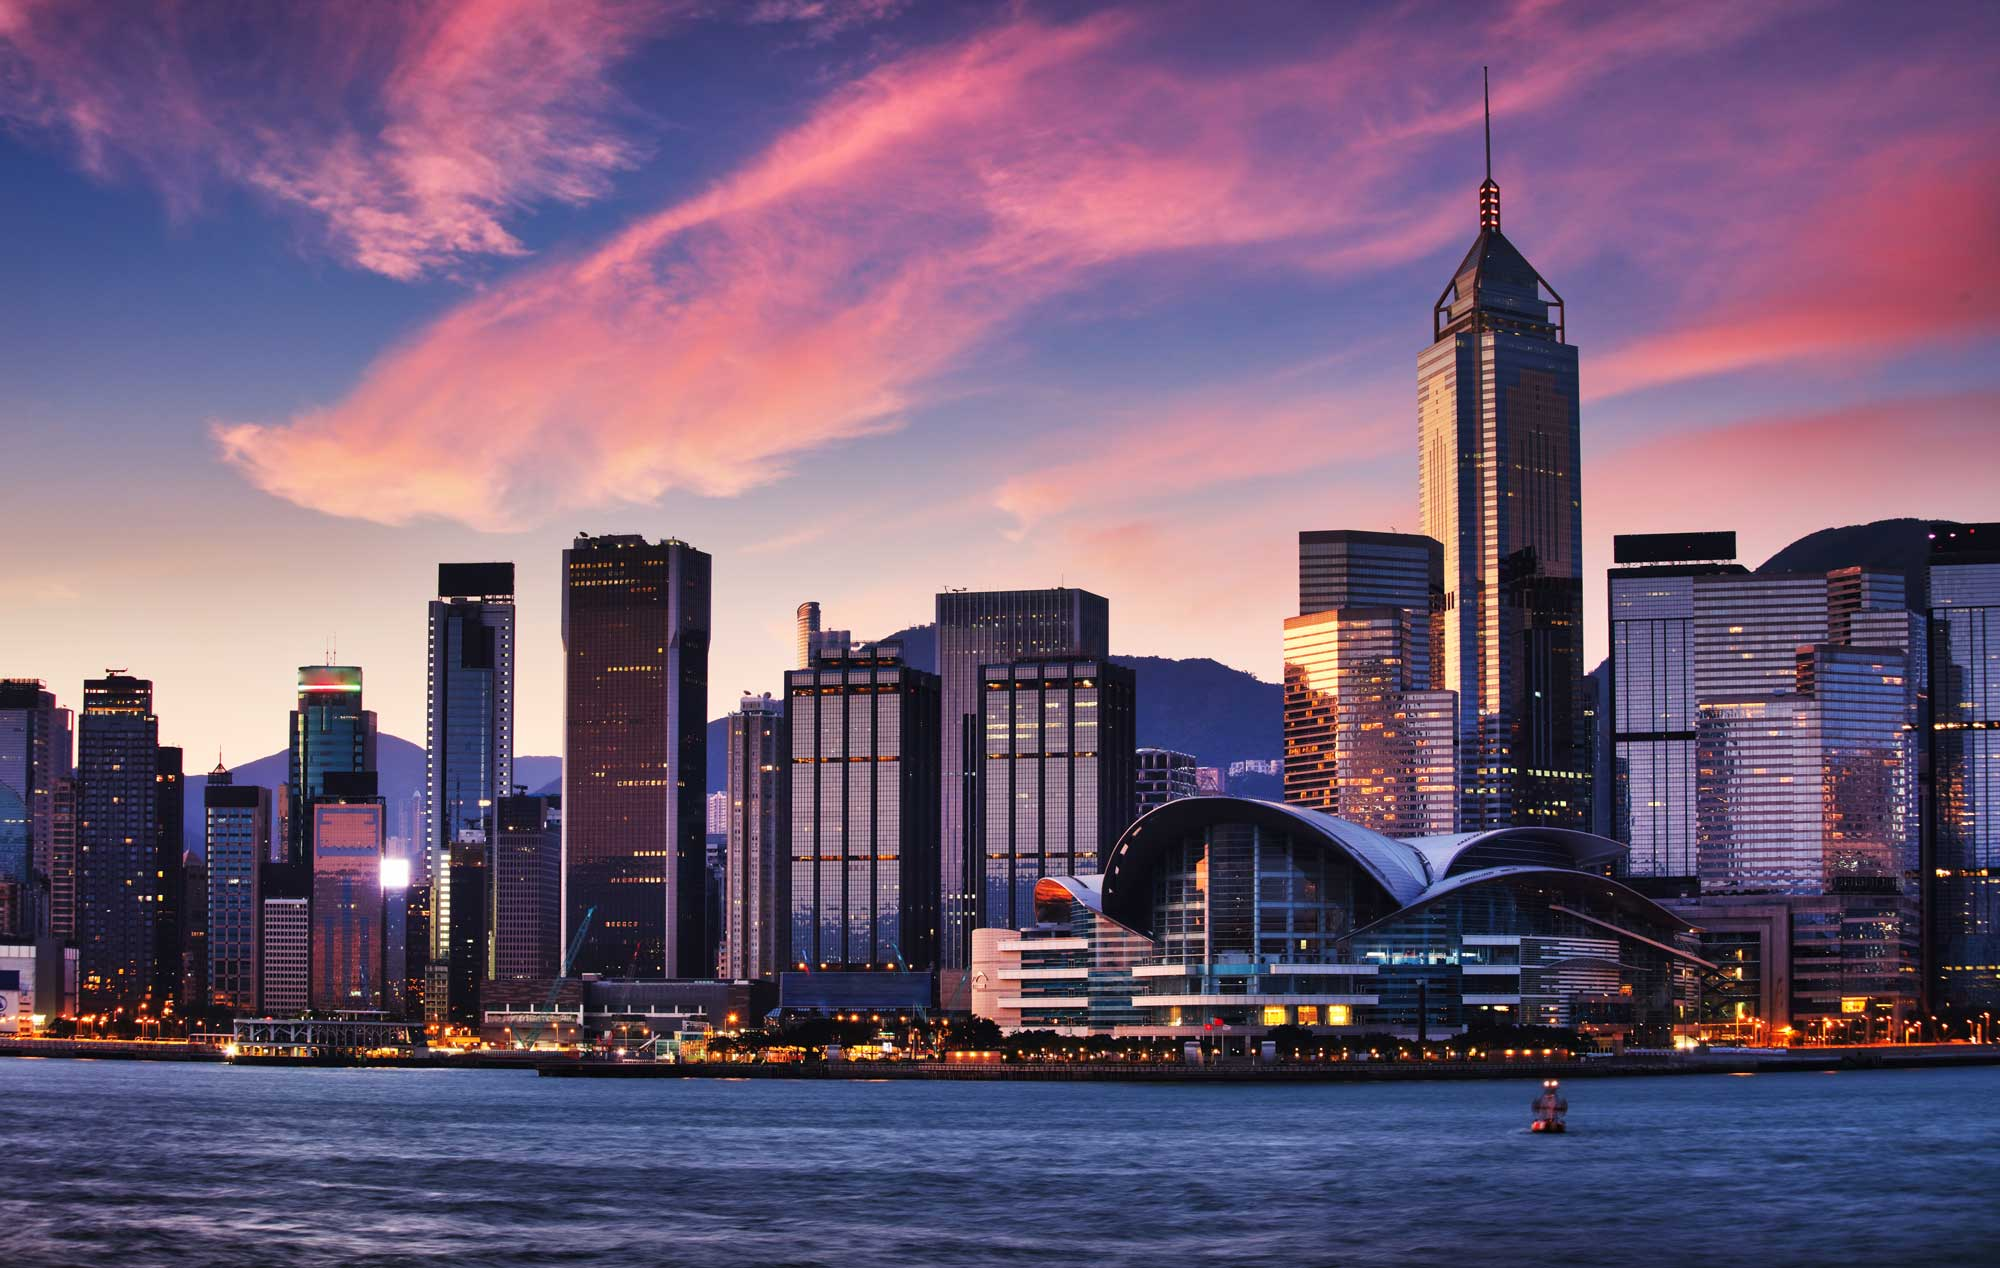 Hong Kong - A city of constant change